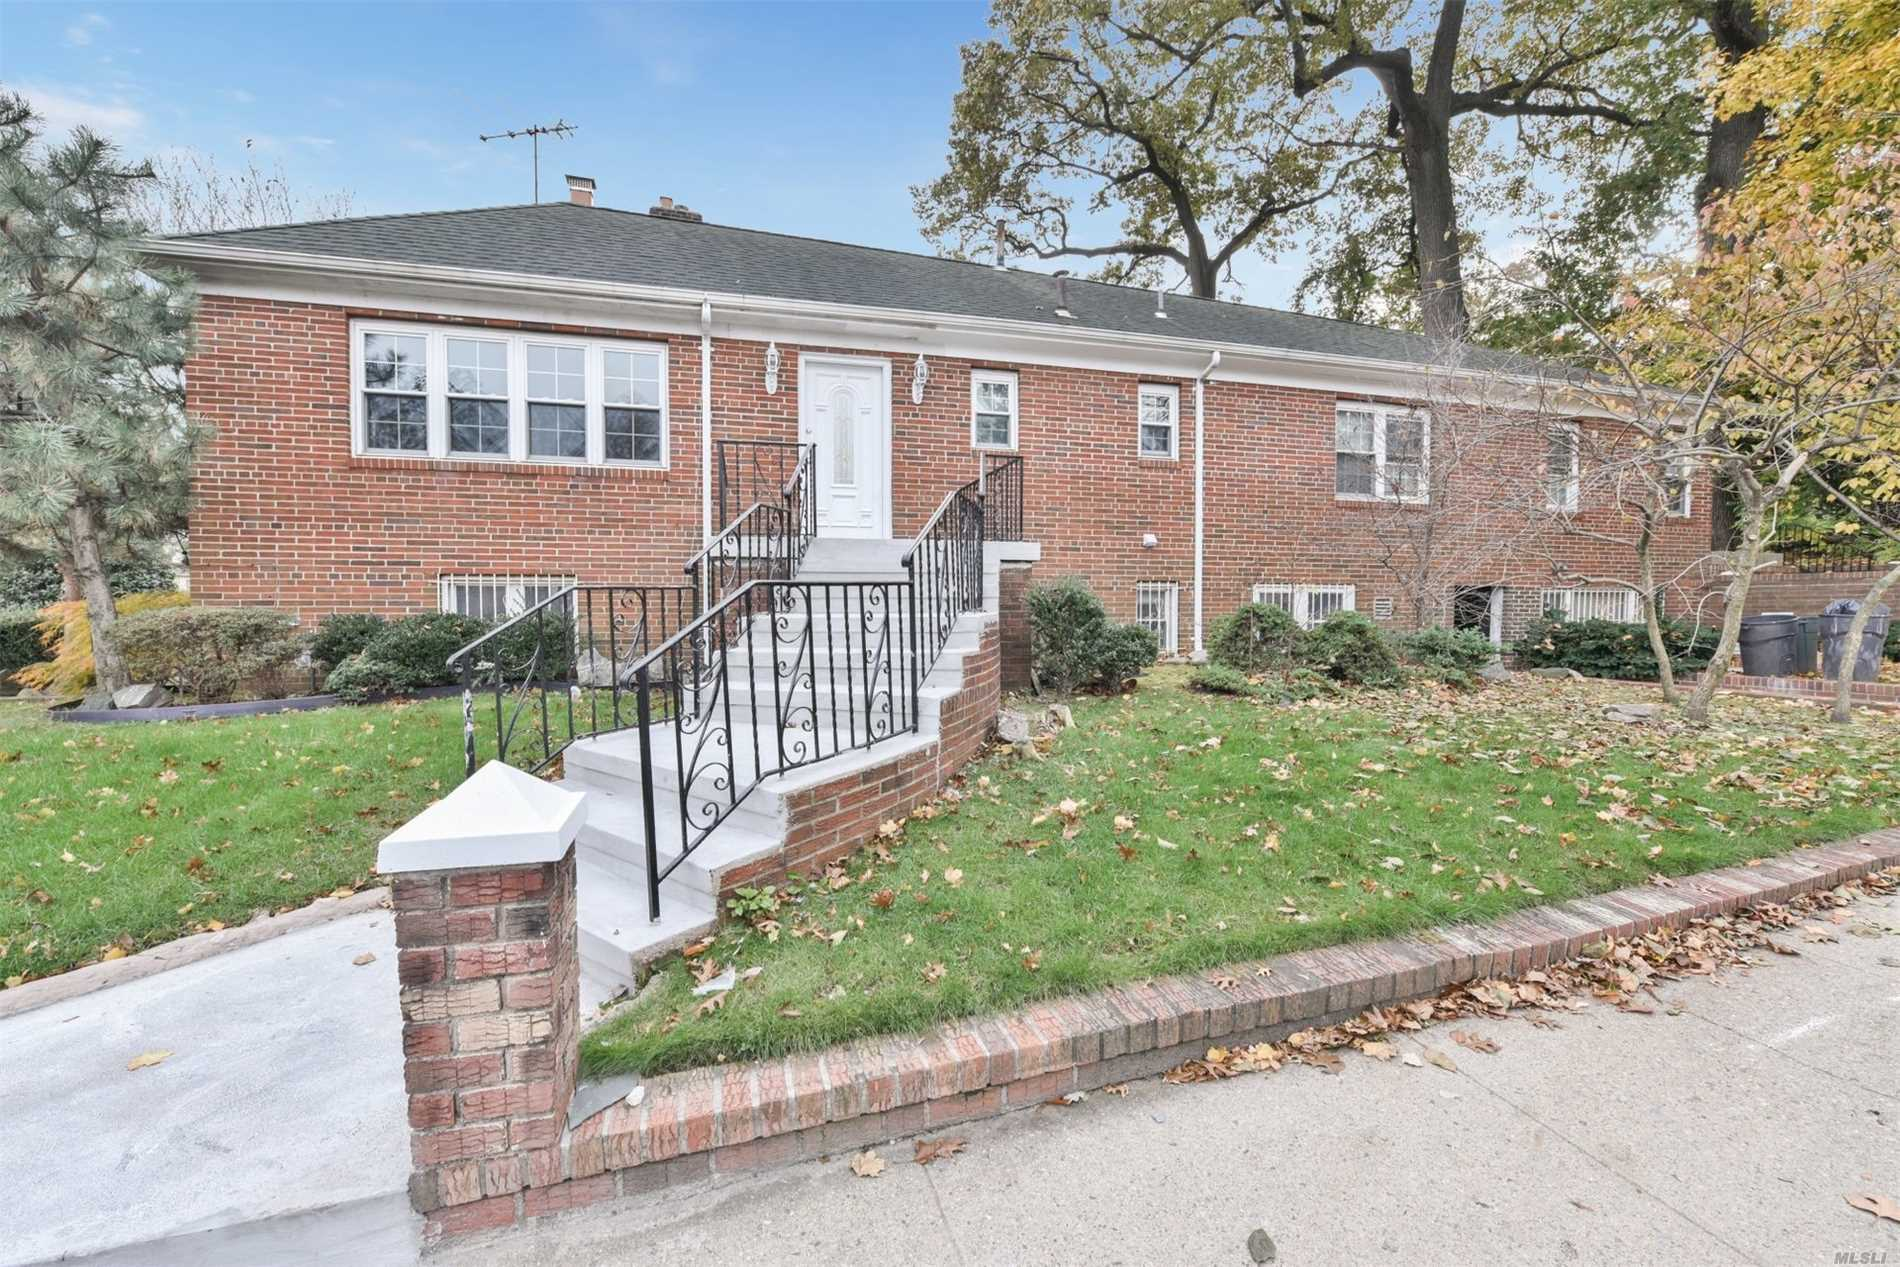 Fully Renovated 1-Family House Located In the Jamaica Estates Area. This Corner All Brick House Featuring Living Room With Wood Burning Fireplace, Dining area, Kitchen, 1.5- Bath And 3-Bedrooms. The House Is Located Within Minutes From All Major Transportation And Shopping.